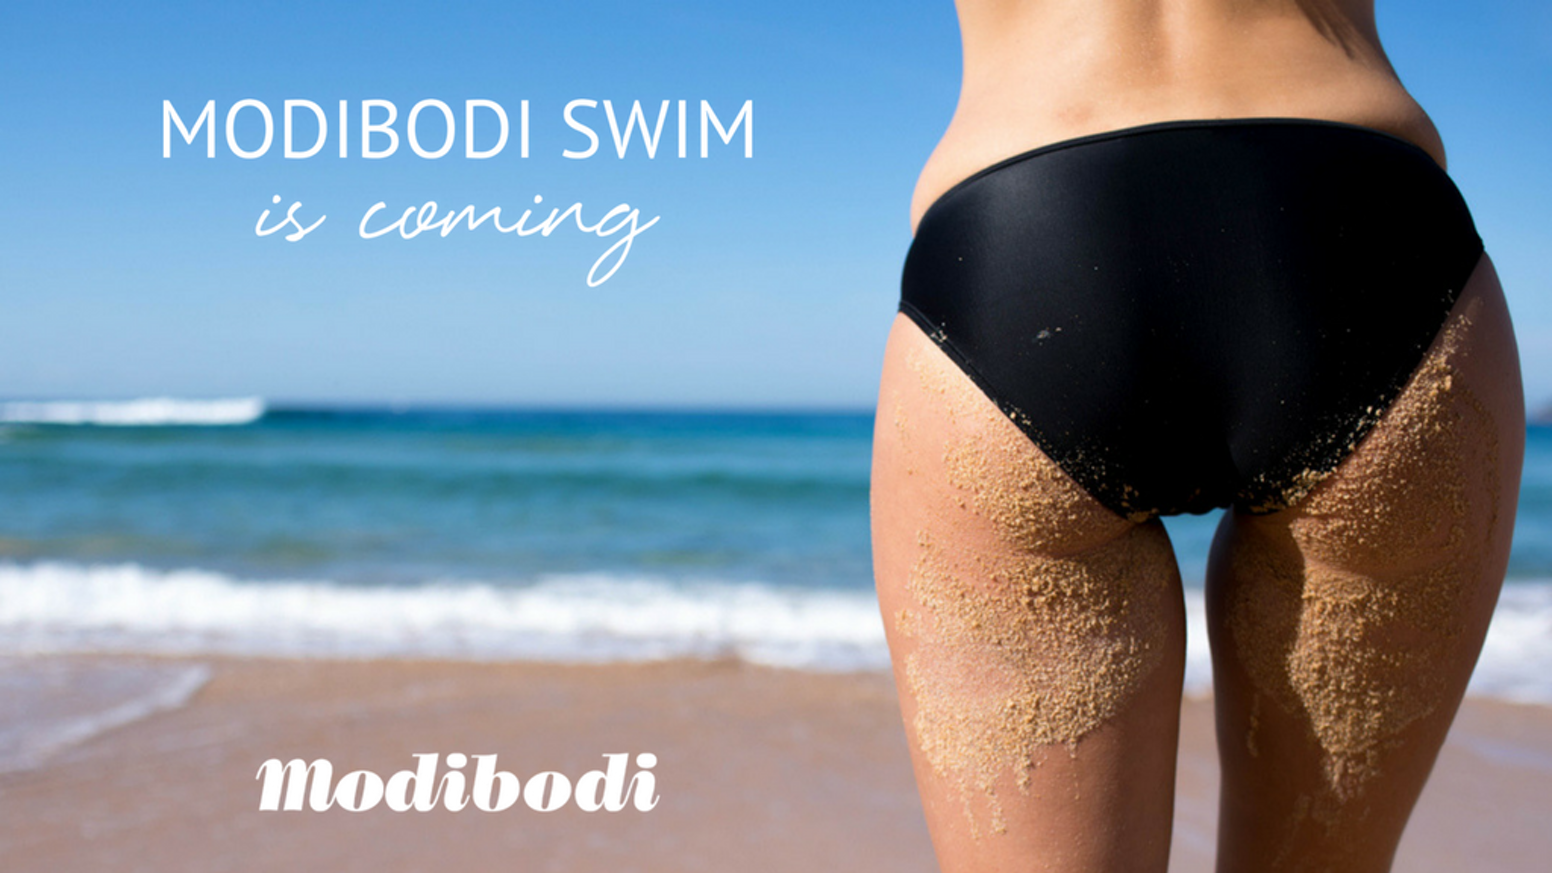 Modibodi™ Swim is your clever new cosi. Poolside or beachside, they are period and pee-proof!